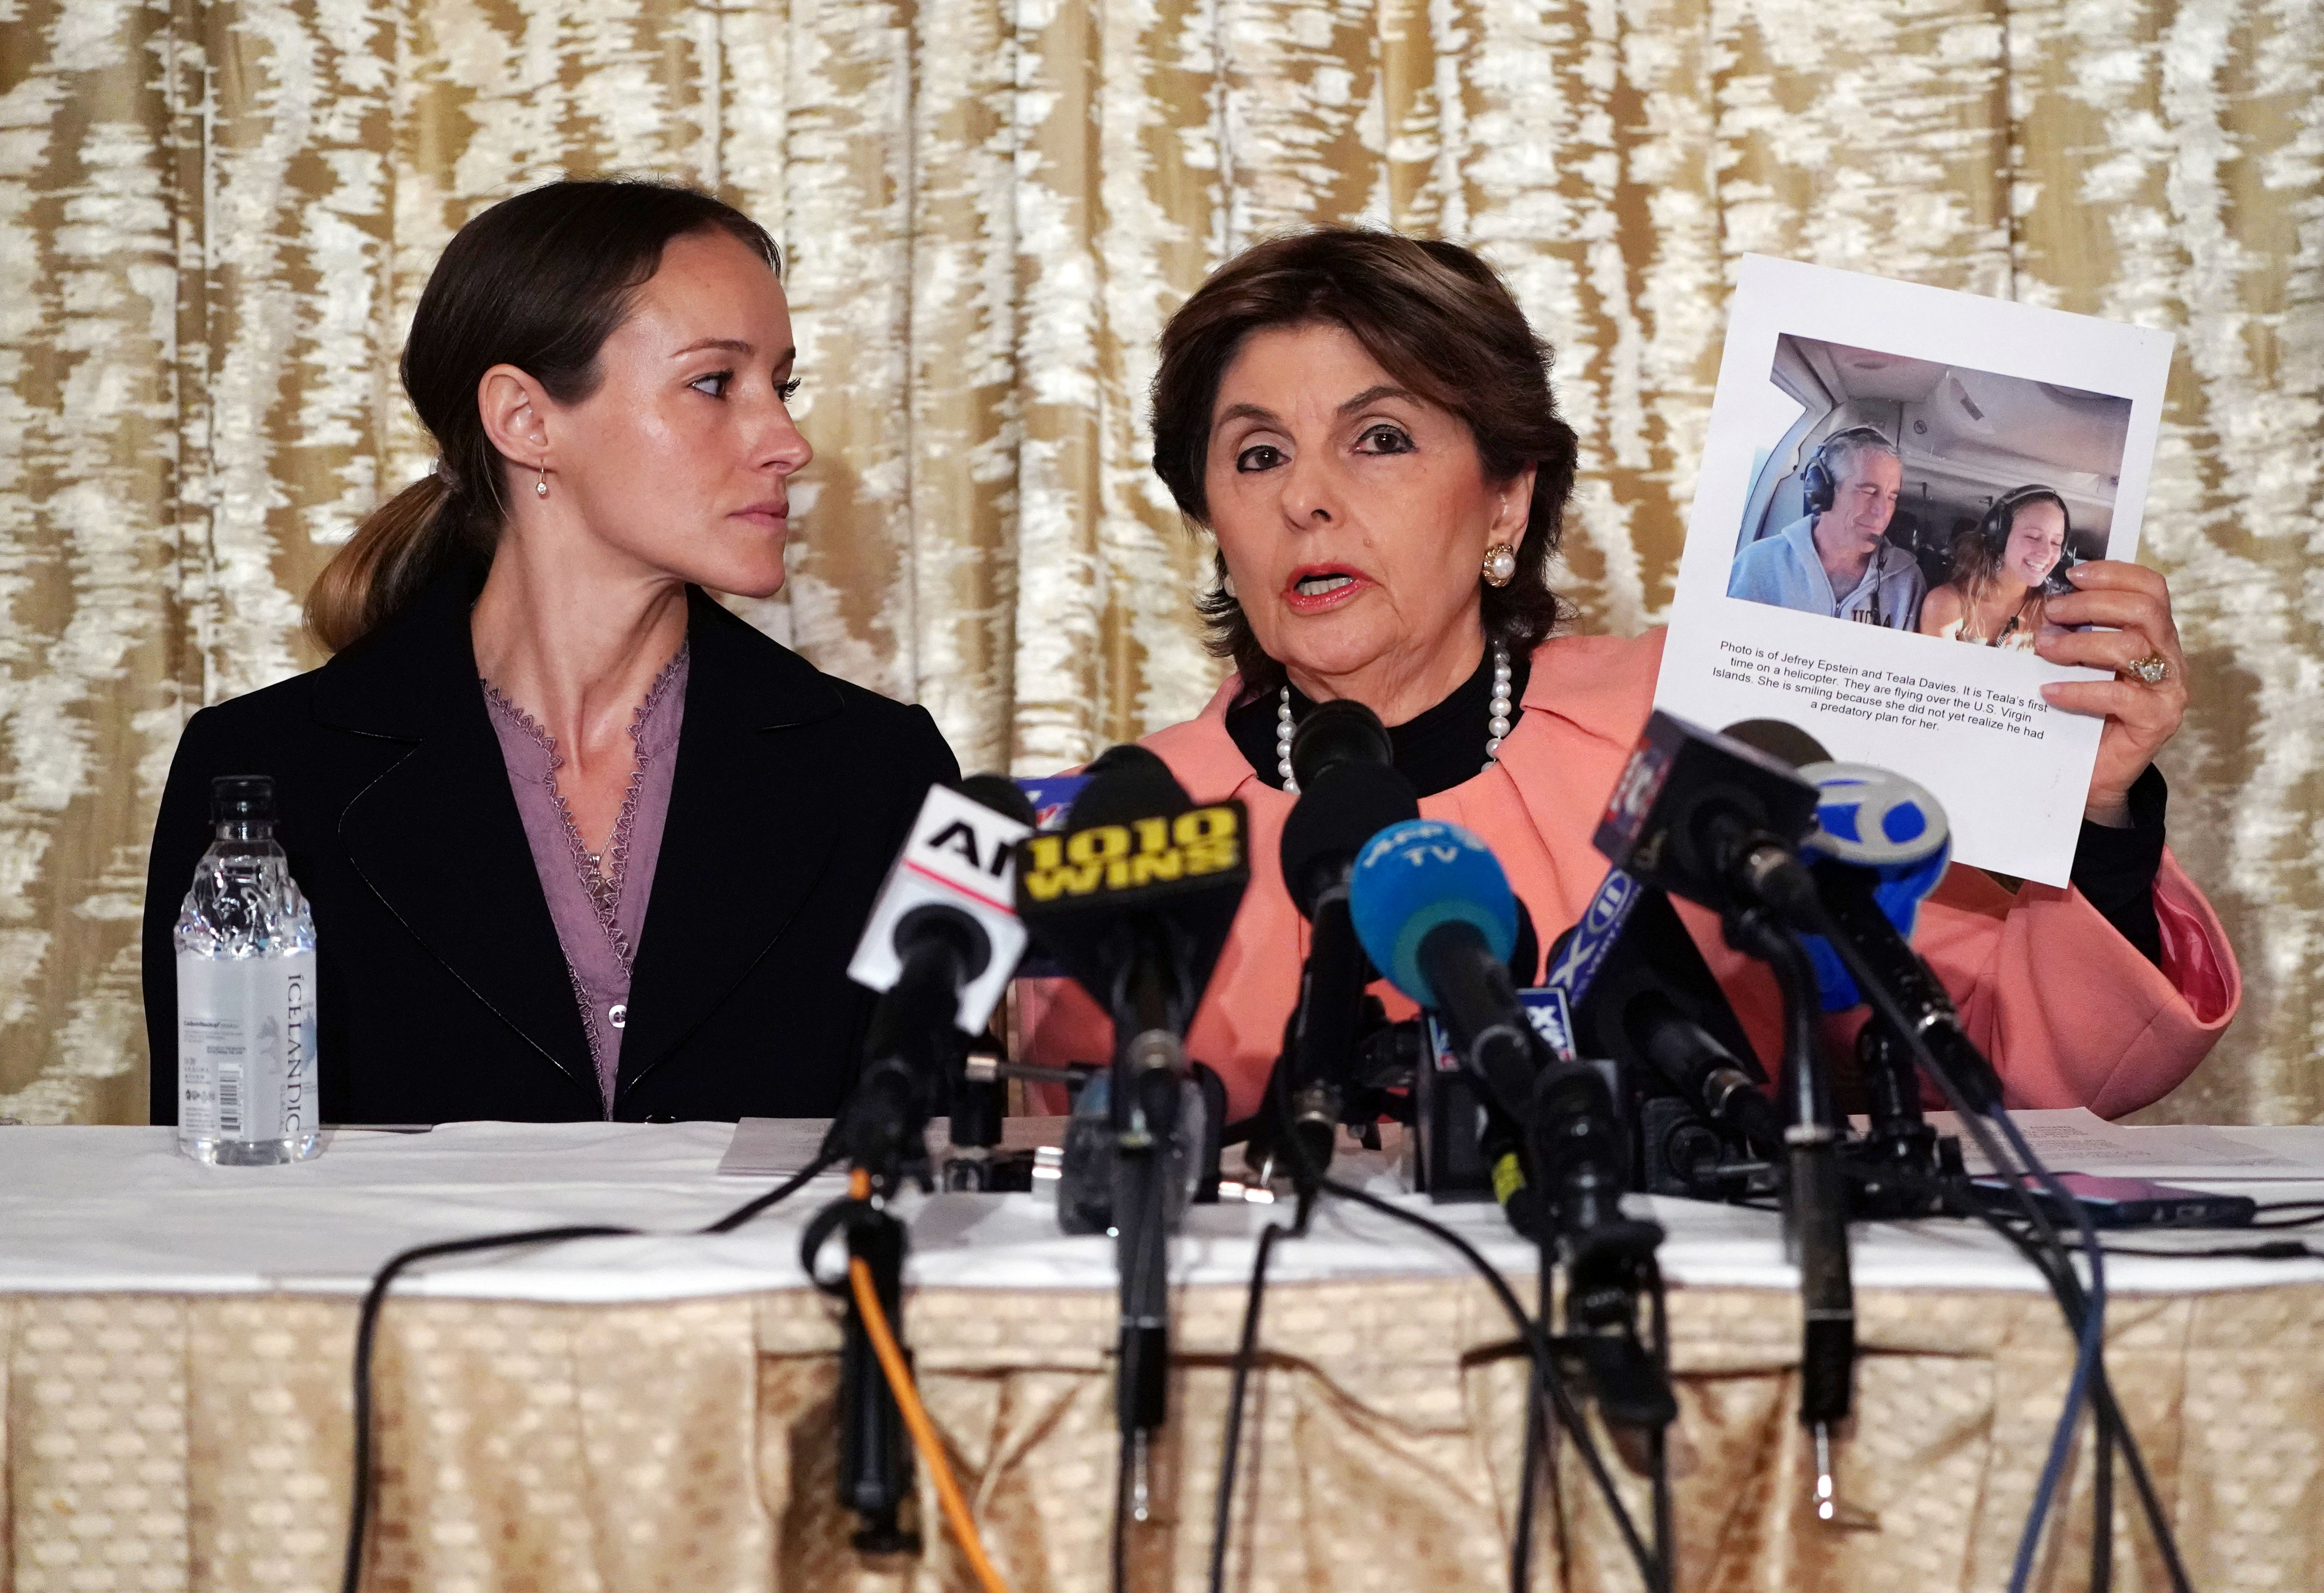 Attorney Gloria Allred (R) and her client Teala Davies, who claims to be a victim of sexual abuse by Jeffrey Epstein when she was a minor, hold a press conference in New York City on November 21, 2019. (TIMOTHY A. CLARY/AFP via Getty Images)